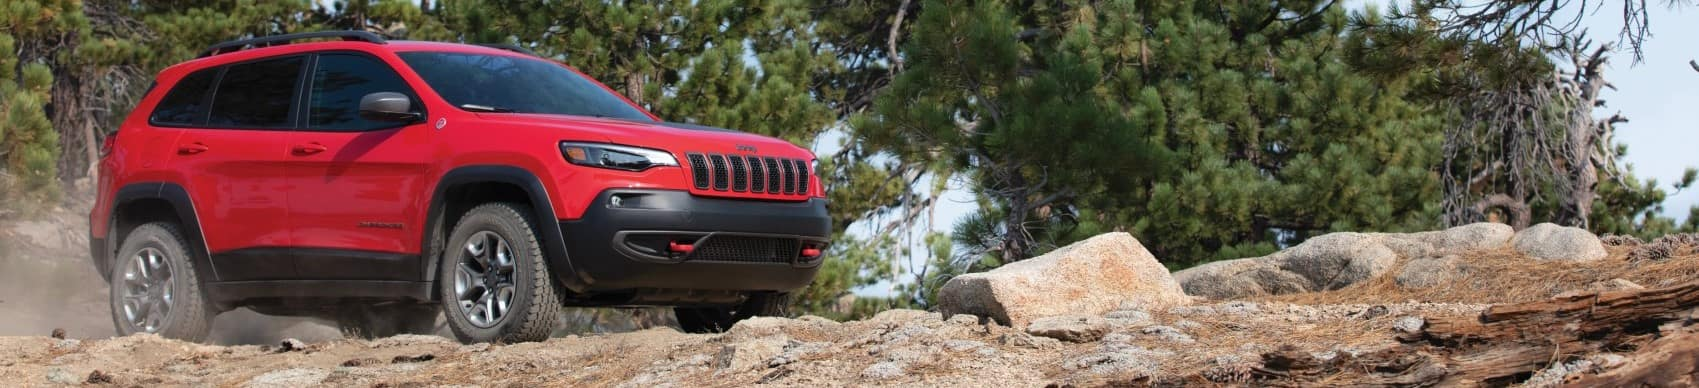 2021 Jeep Cherokee Trailhawk red on mountaintop banner